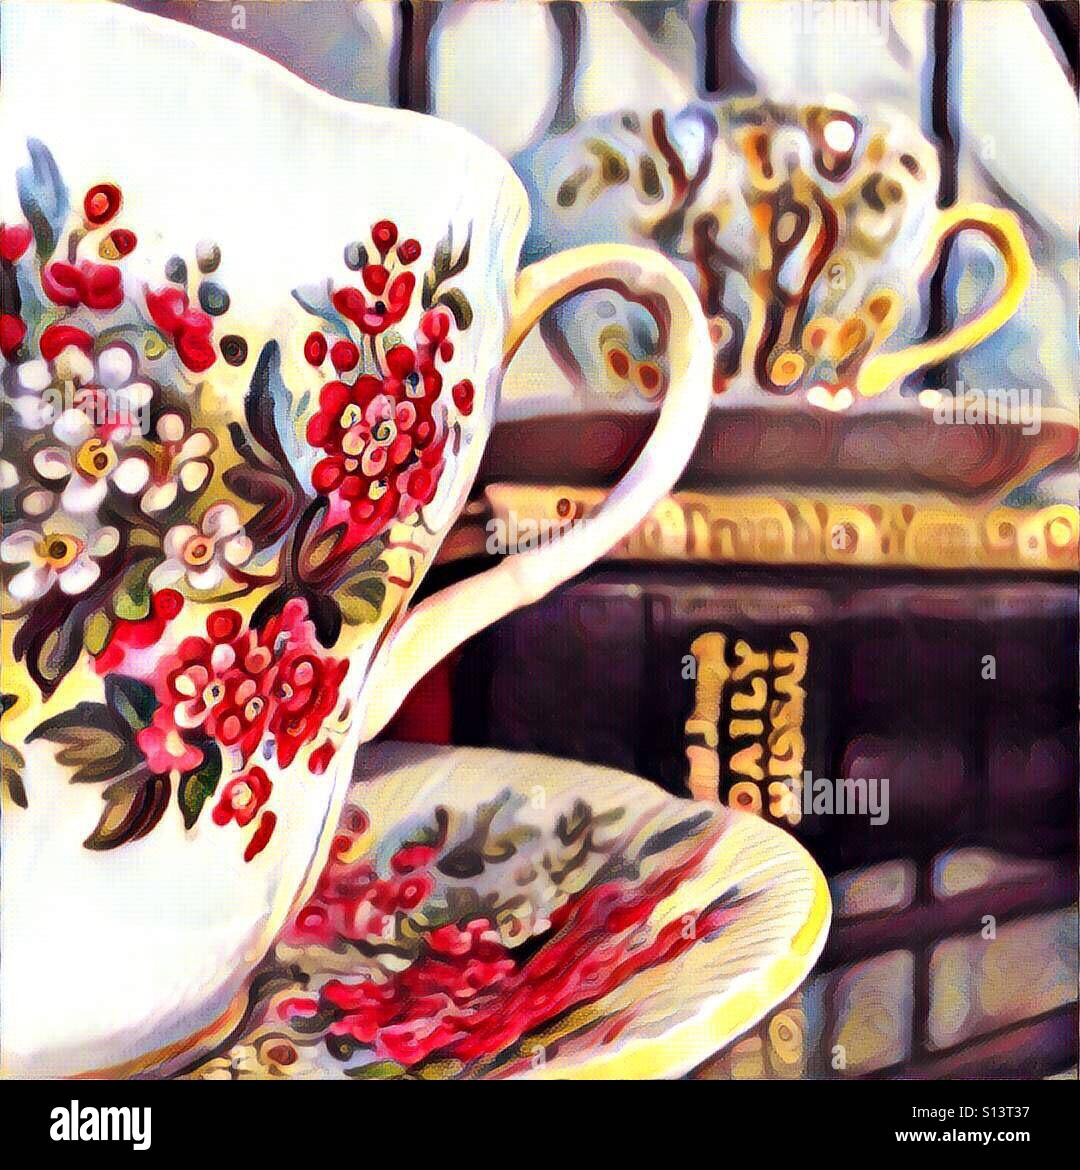 A Digital Painting Of Two Pretty Floral Teacups Atop Some Books